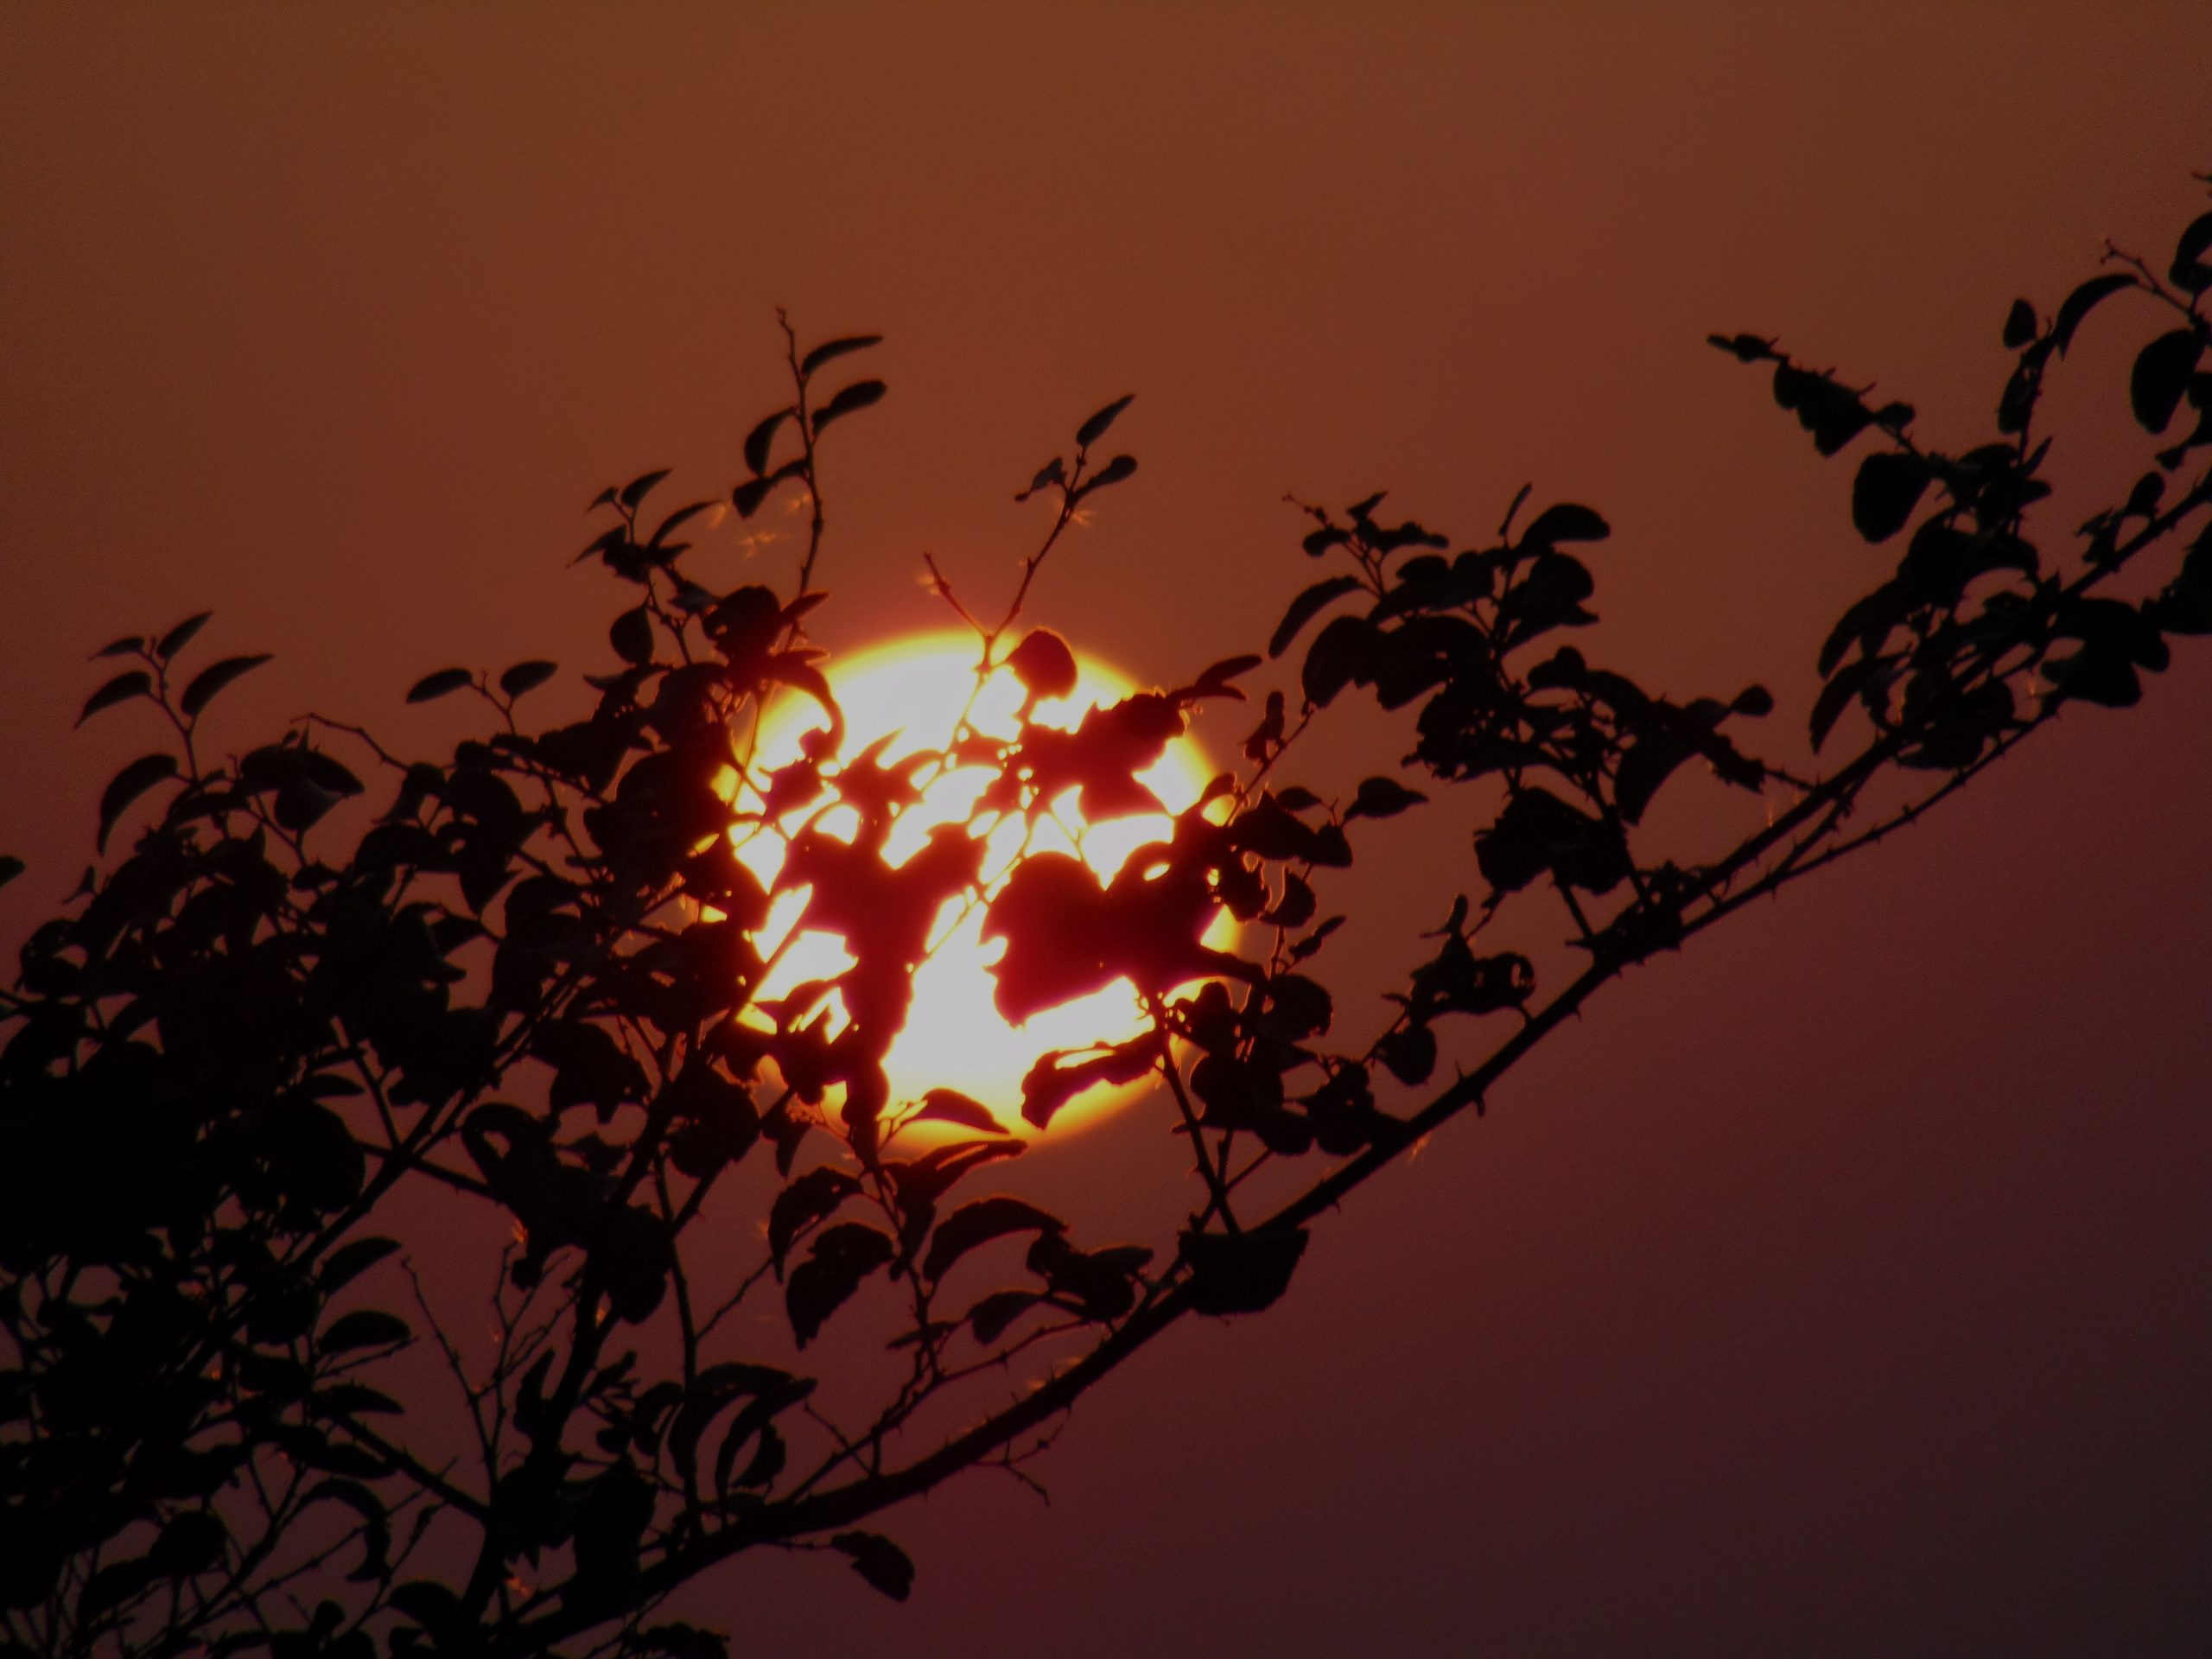 Sun behind a tree branch